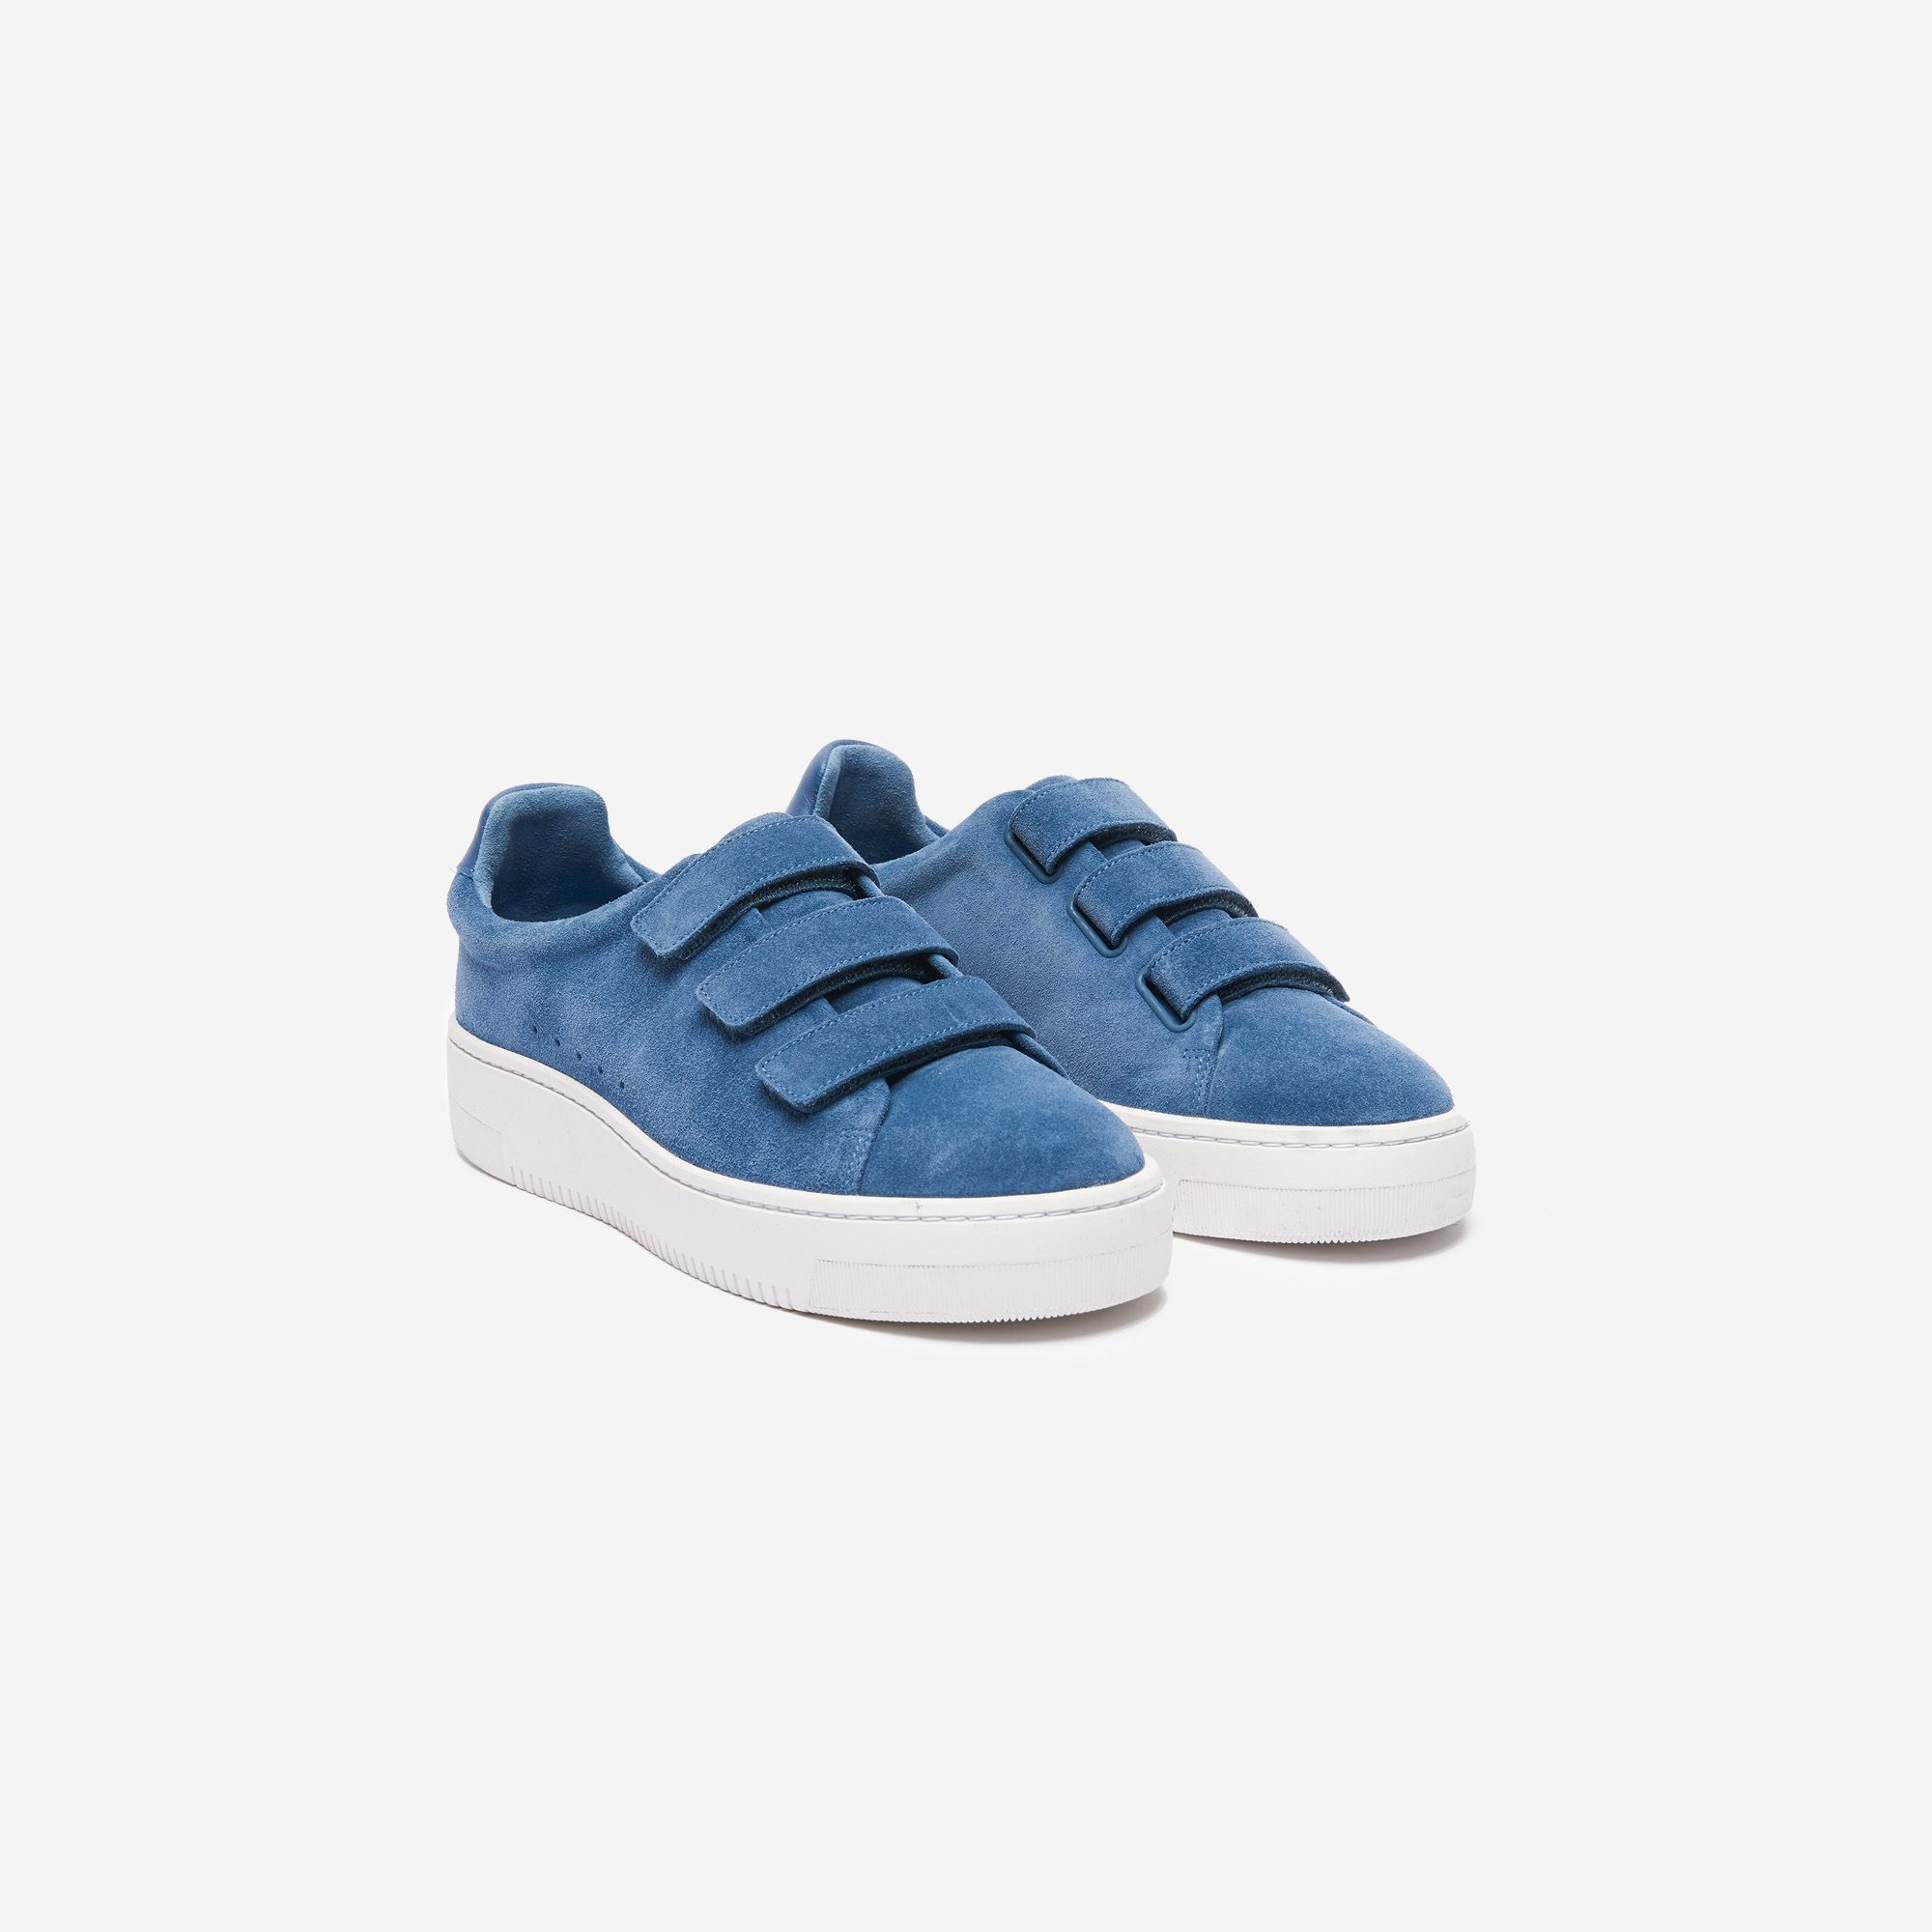 buy popular 75196 074ce Sandro trainersbr  • 100% calfskin - suede type materialbr  • Thick  soles and Velcro strapsbr  • Heel height 3cmbr br